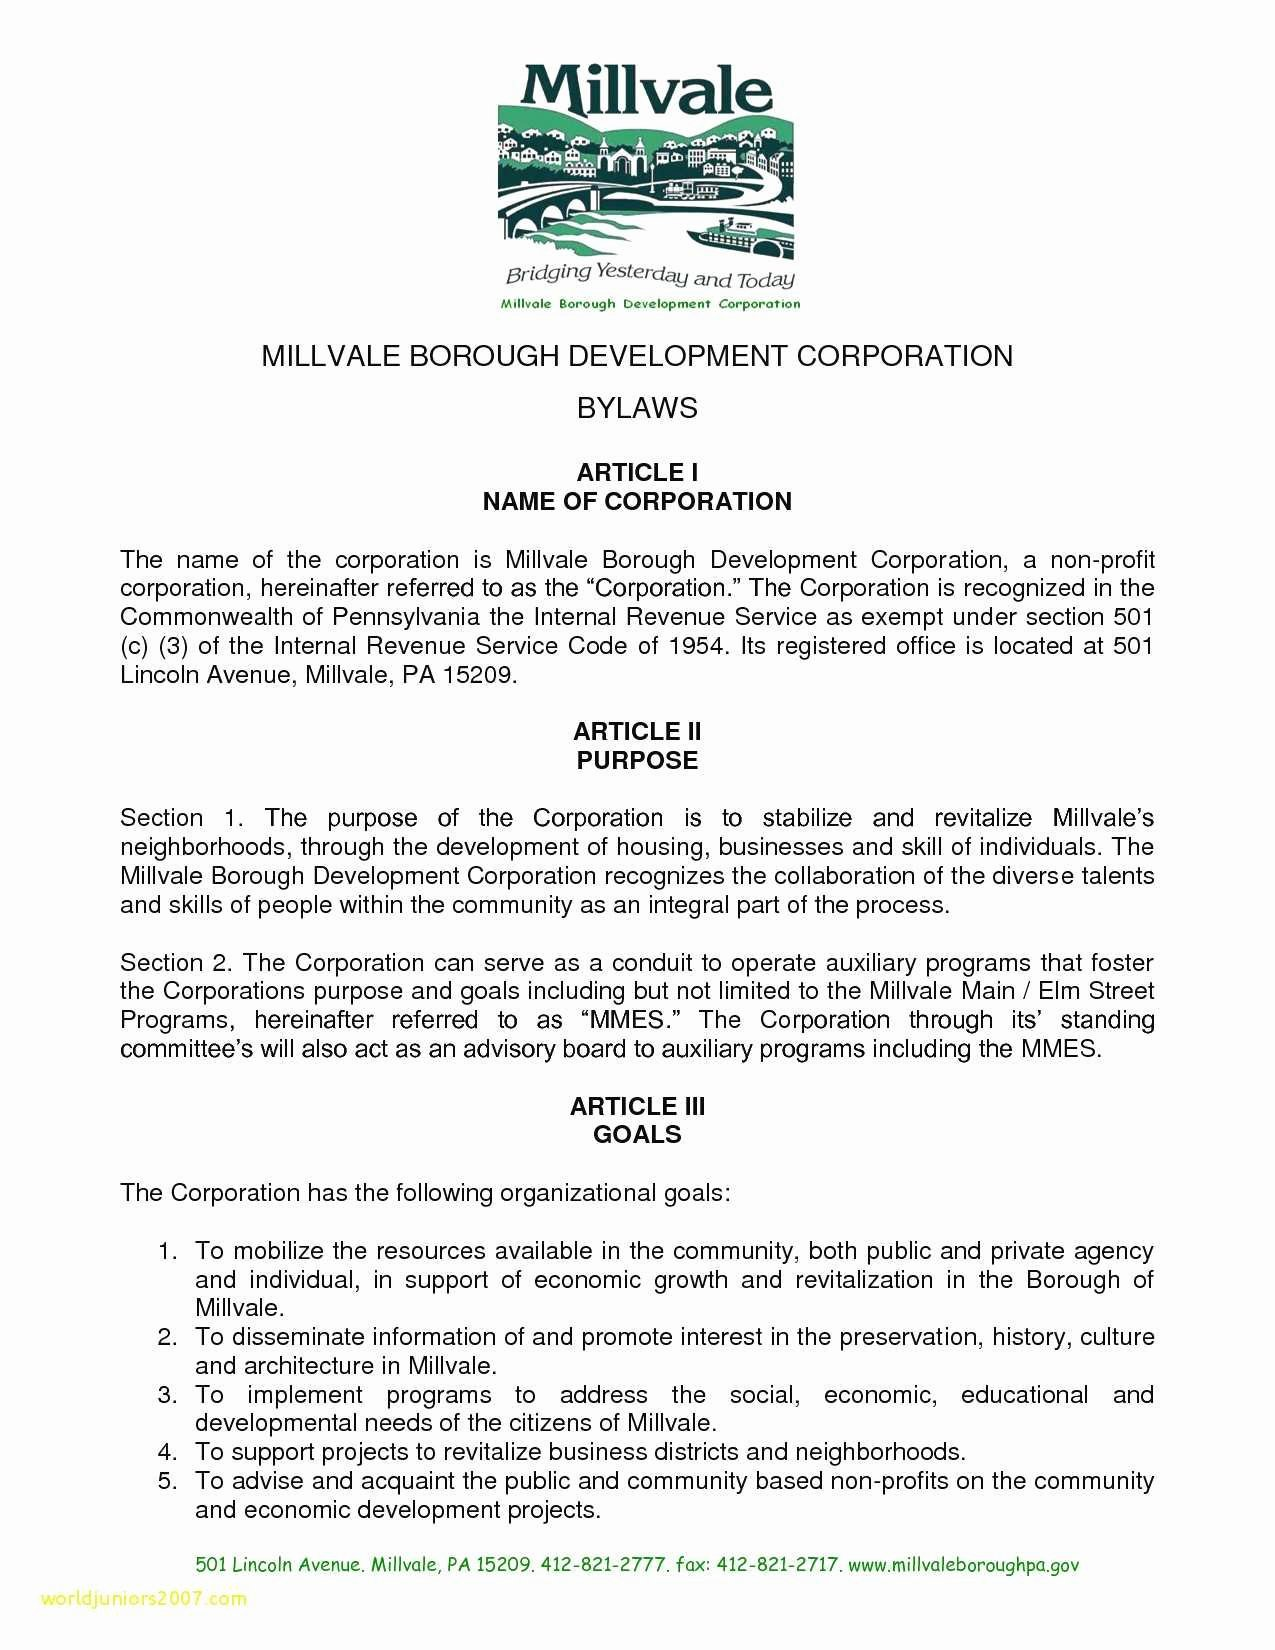 Corporate bylaws Template Pdf Inspirational Inspirational Pany bylaws Template Pdf